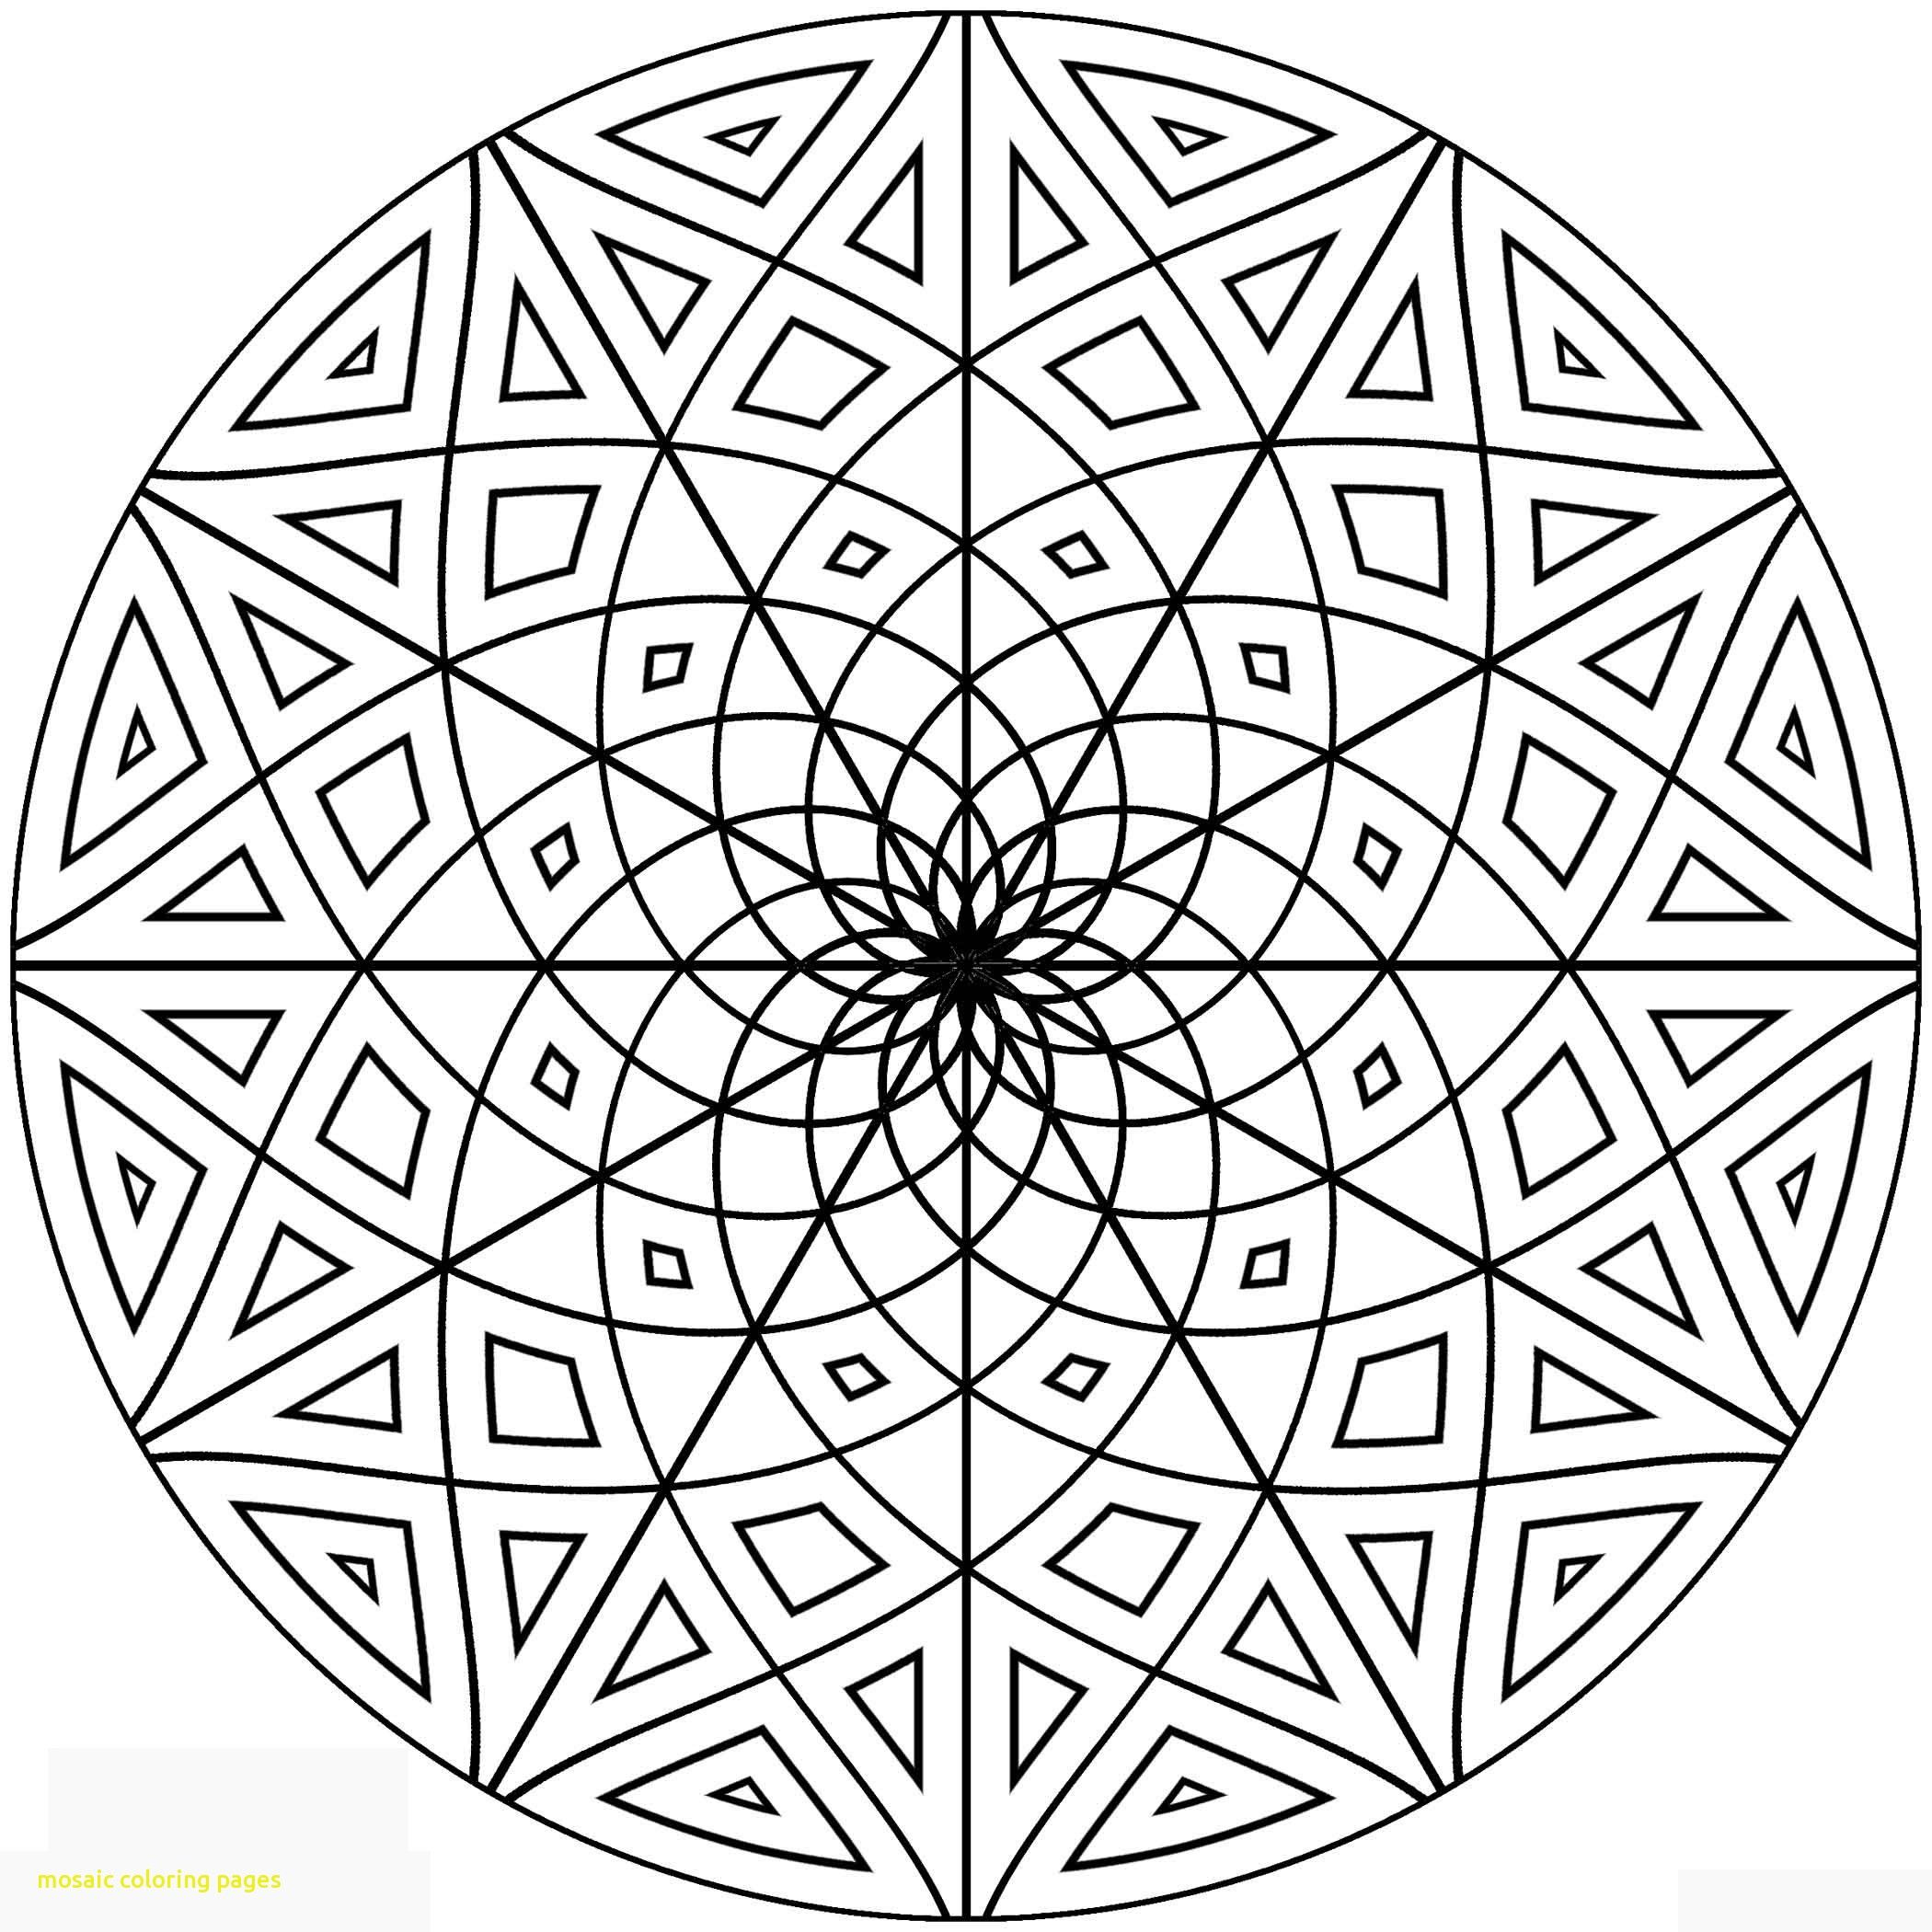 Free Mosaic Coloring Pages At Getdrawings Com Free For Personal